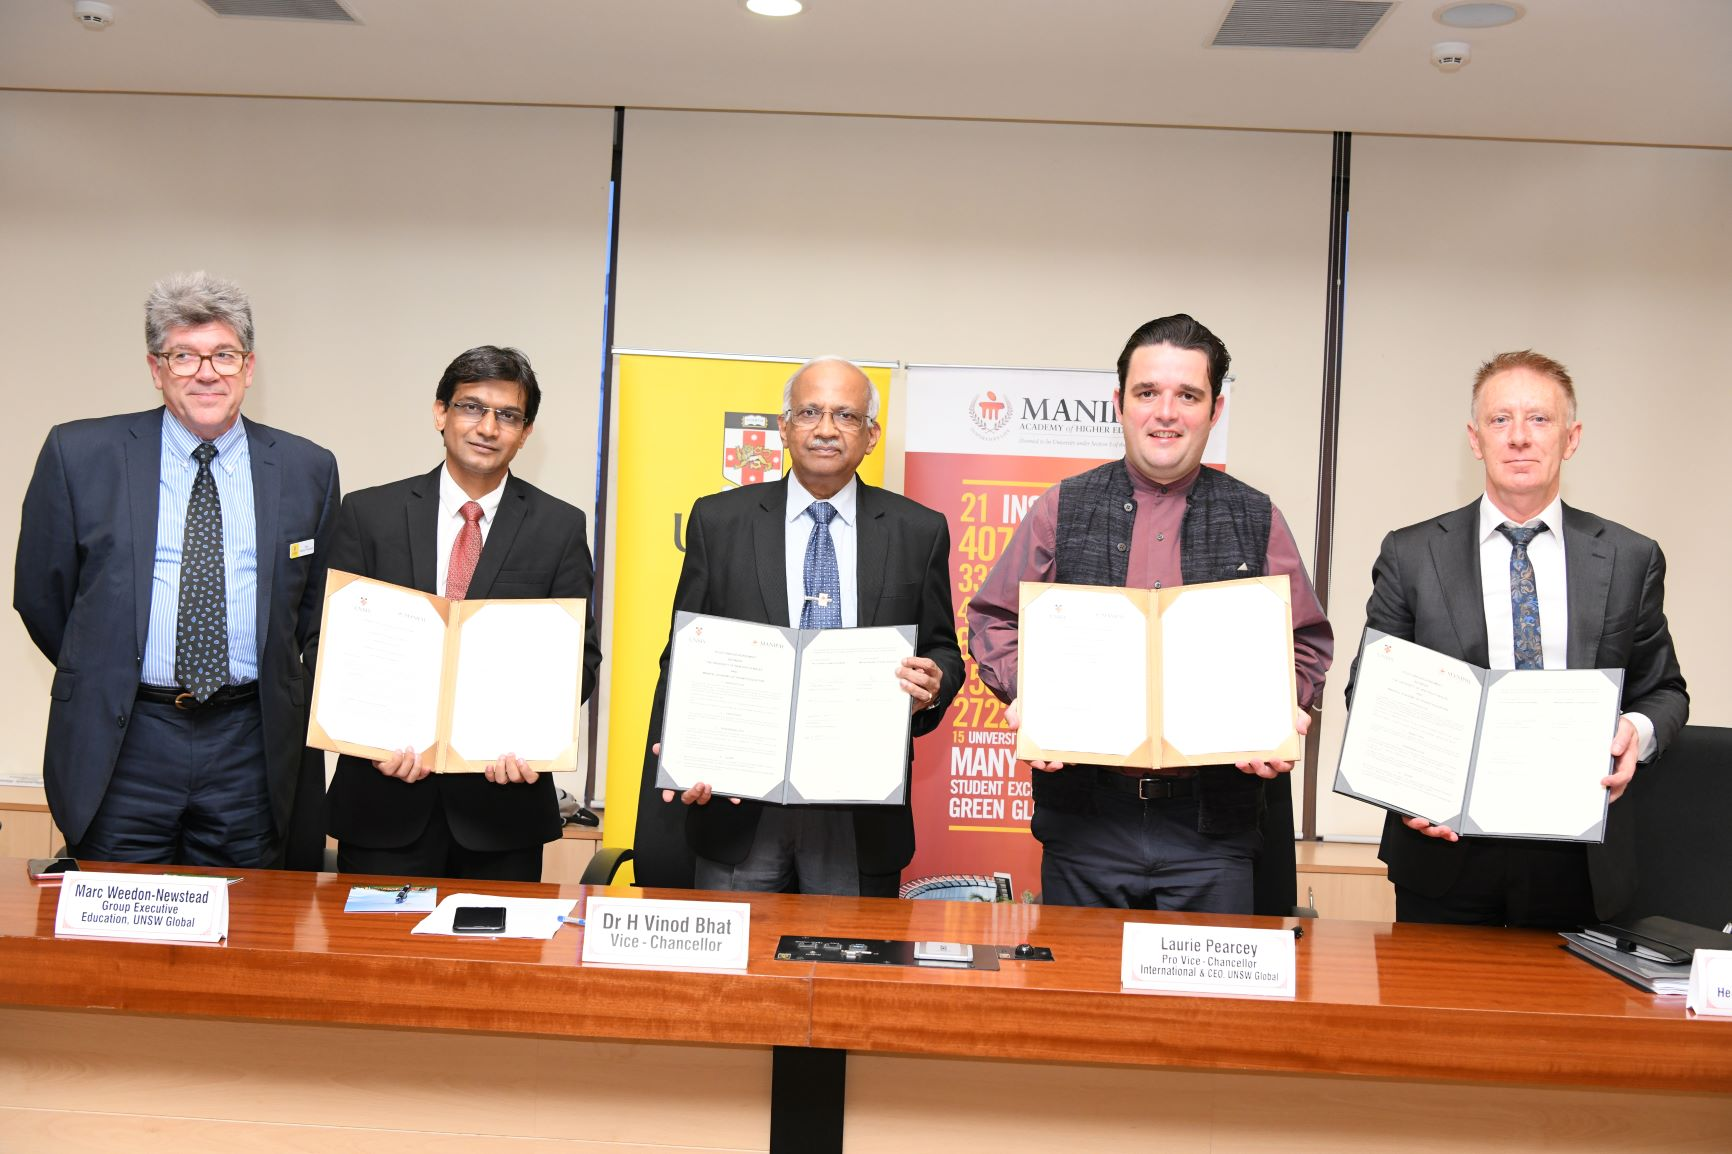 Landmark partnership between UNSW Sydney and MAHE Manipal